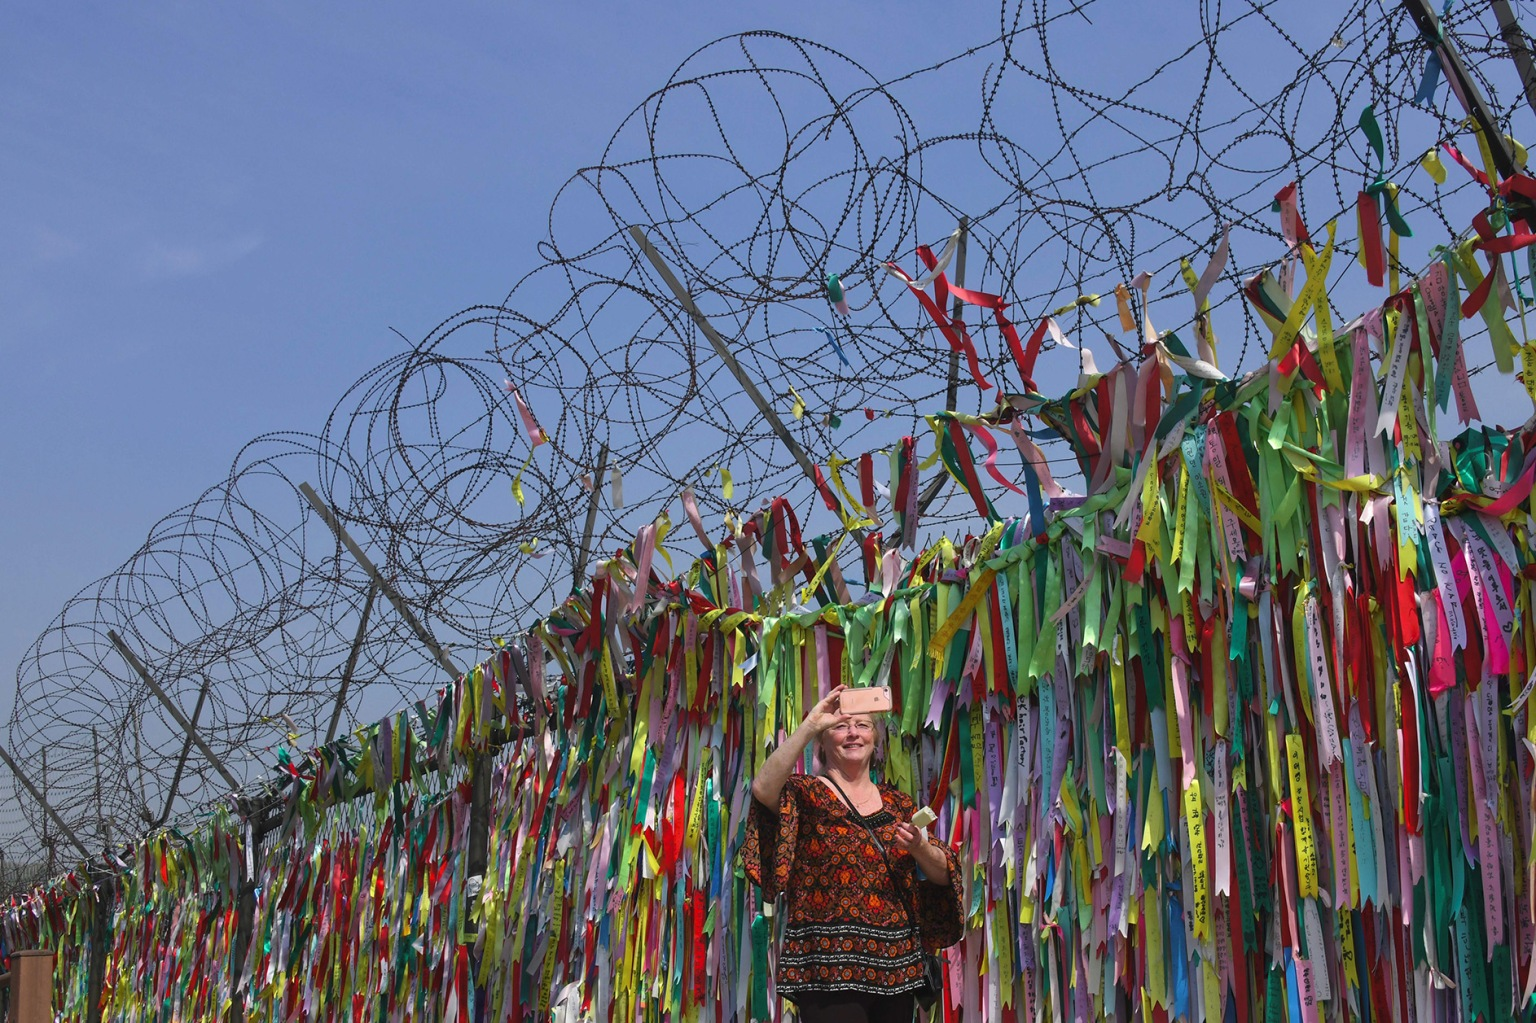 A woman poses in front of a military fence covered with ribbons calling for peace and reunification at Imjingak peace park in Paju, South Korea, near the demilitarized zone dividing the two Koreas on April 26. North Korea's leader Kim Jong Un and the South's president Moon Jae-in met at the Military Demarcation Line that divides the peninsula ahead of the inter-Korea summit in an occasion laden with symbolism. JUNG YEON-JE/AFP/Getty Images